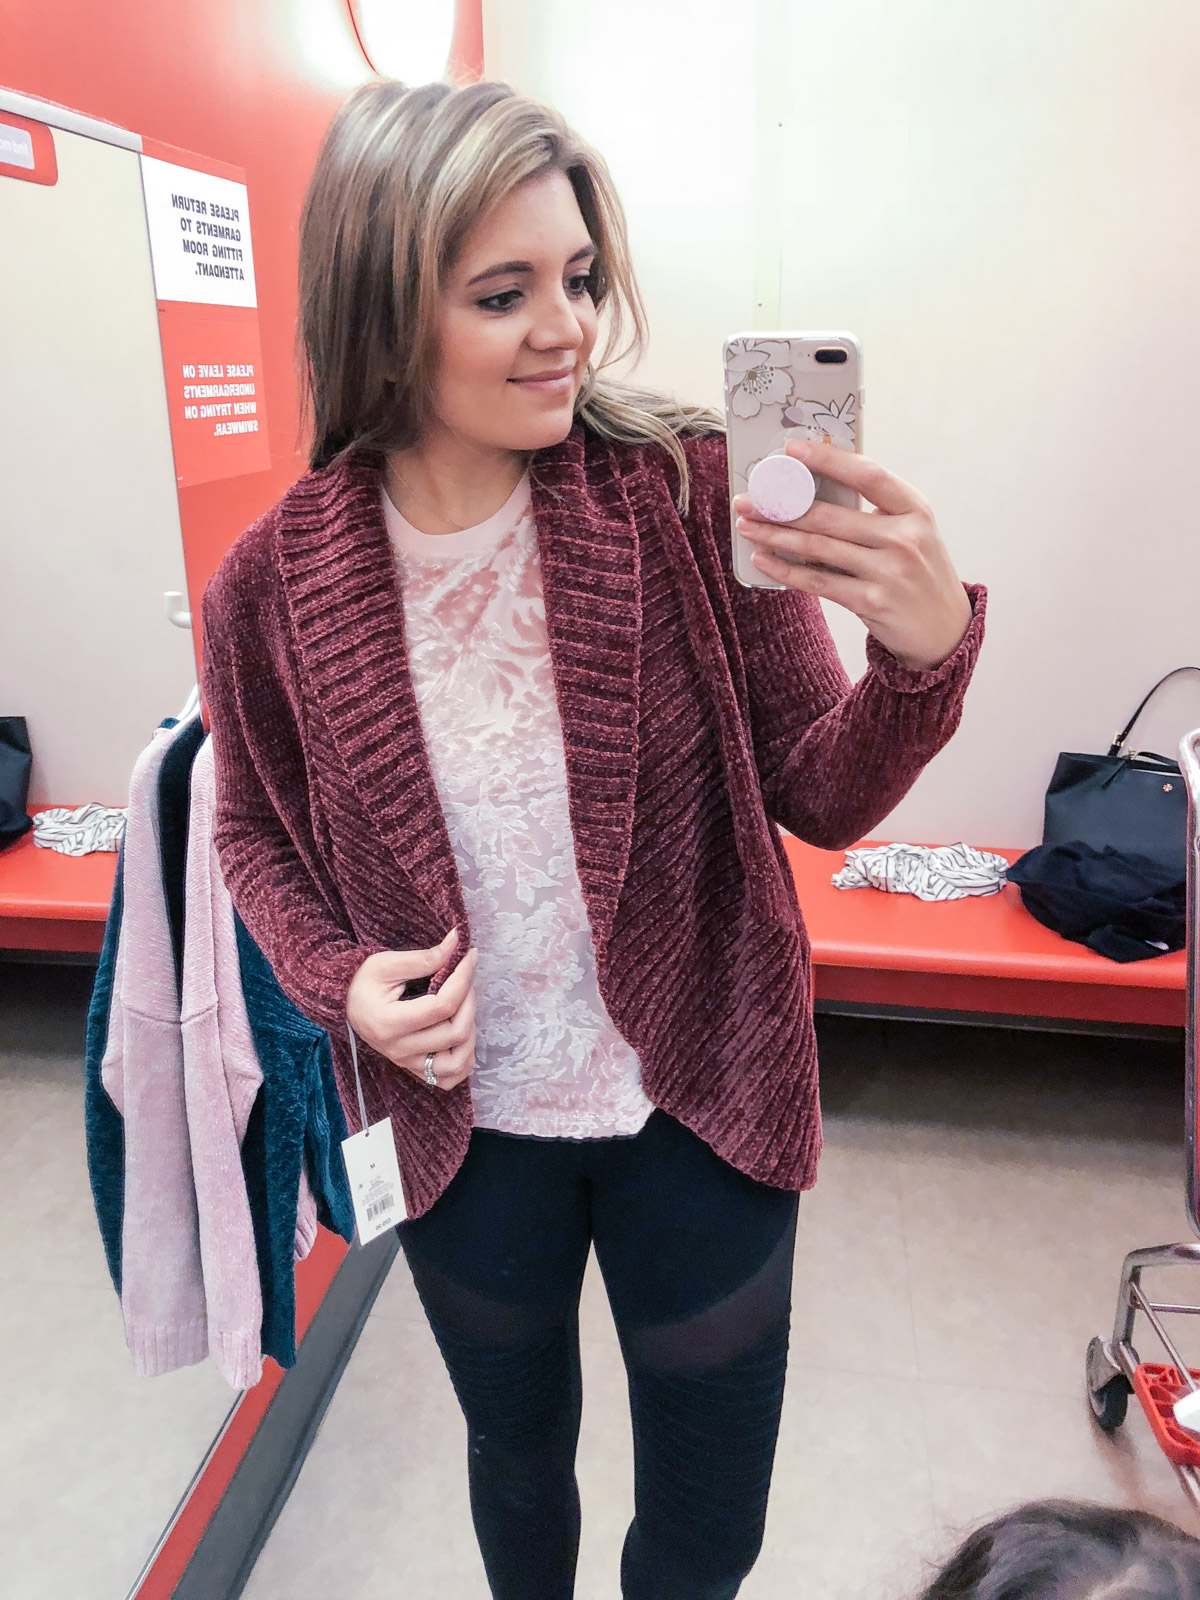 Target try-on session - best target clothes | For more dressing room reviews, check out bylaurenm.com!